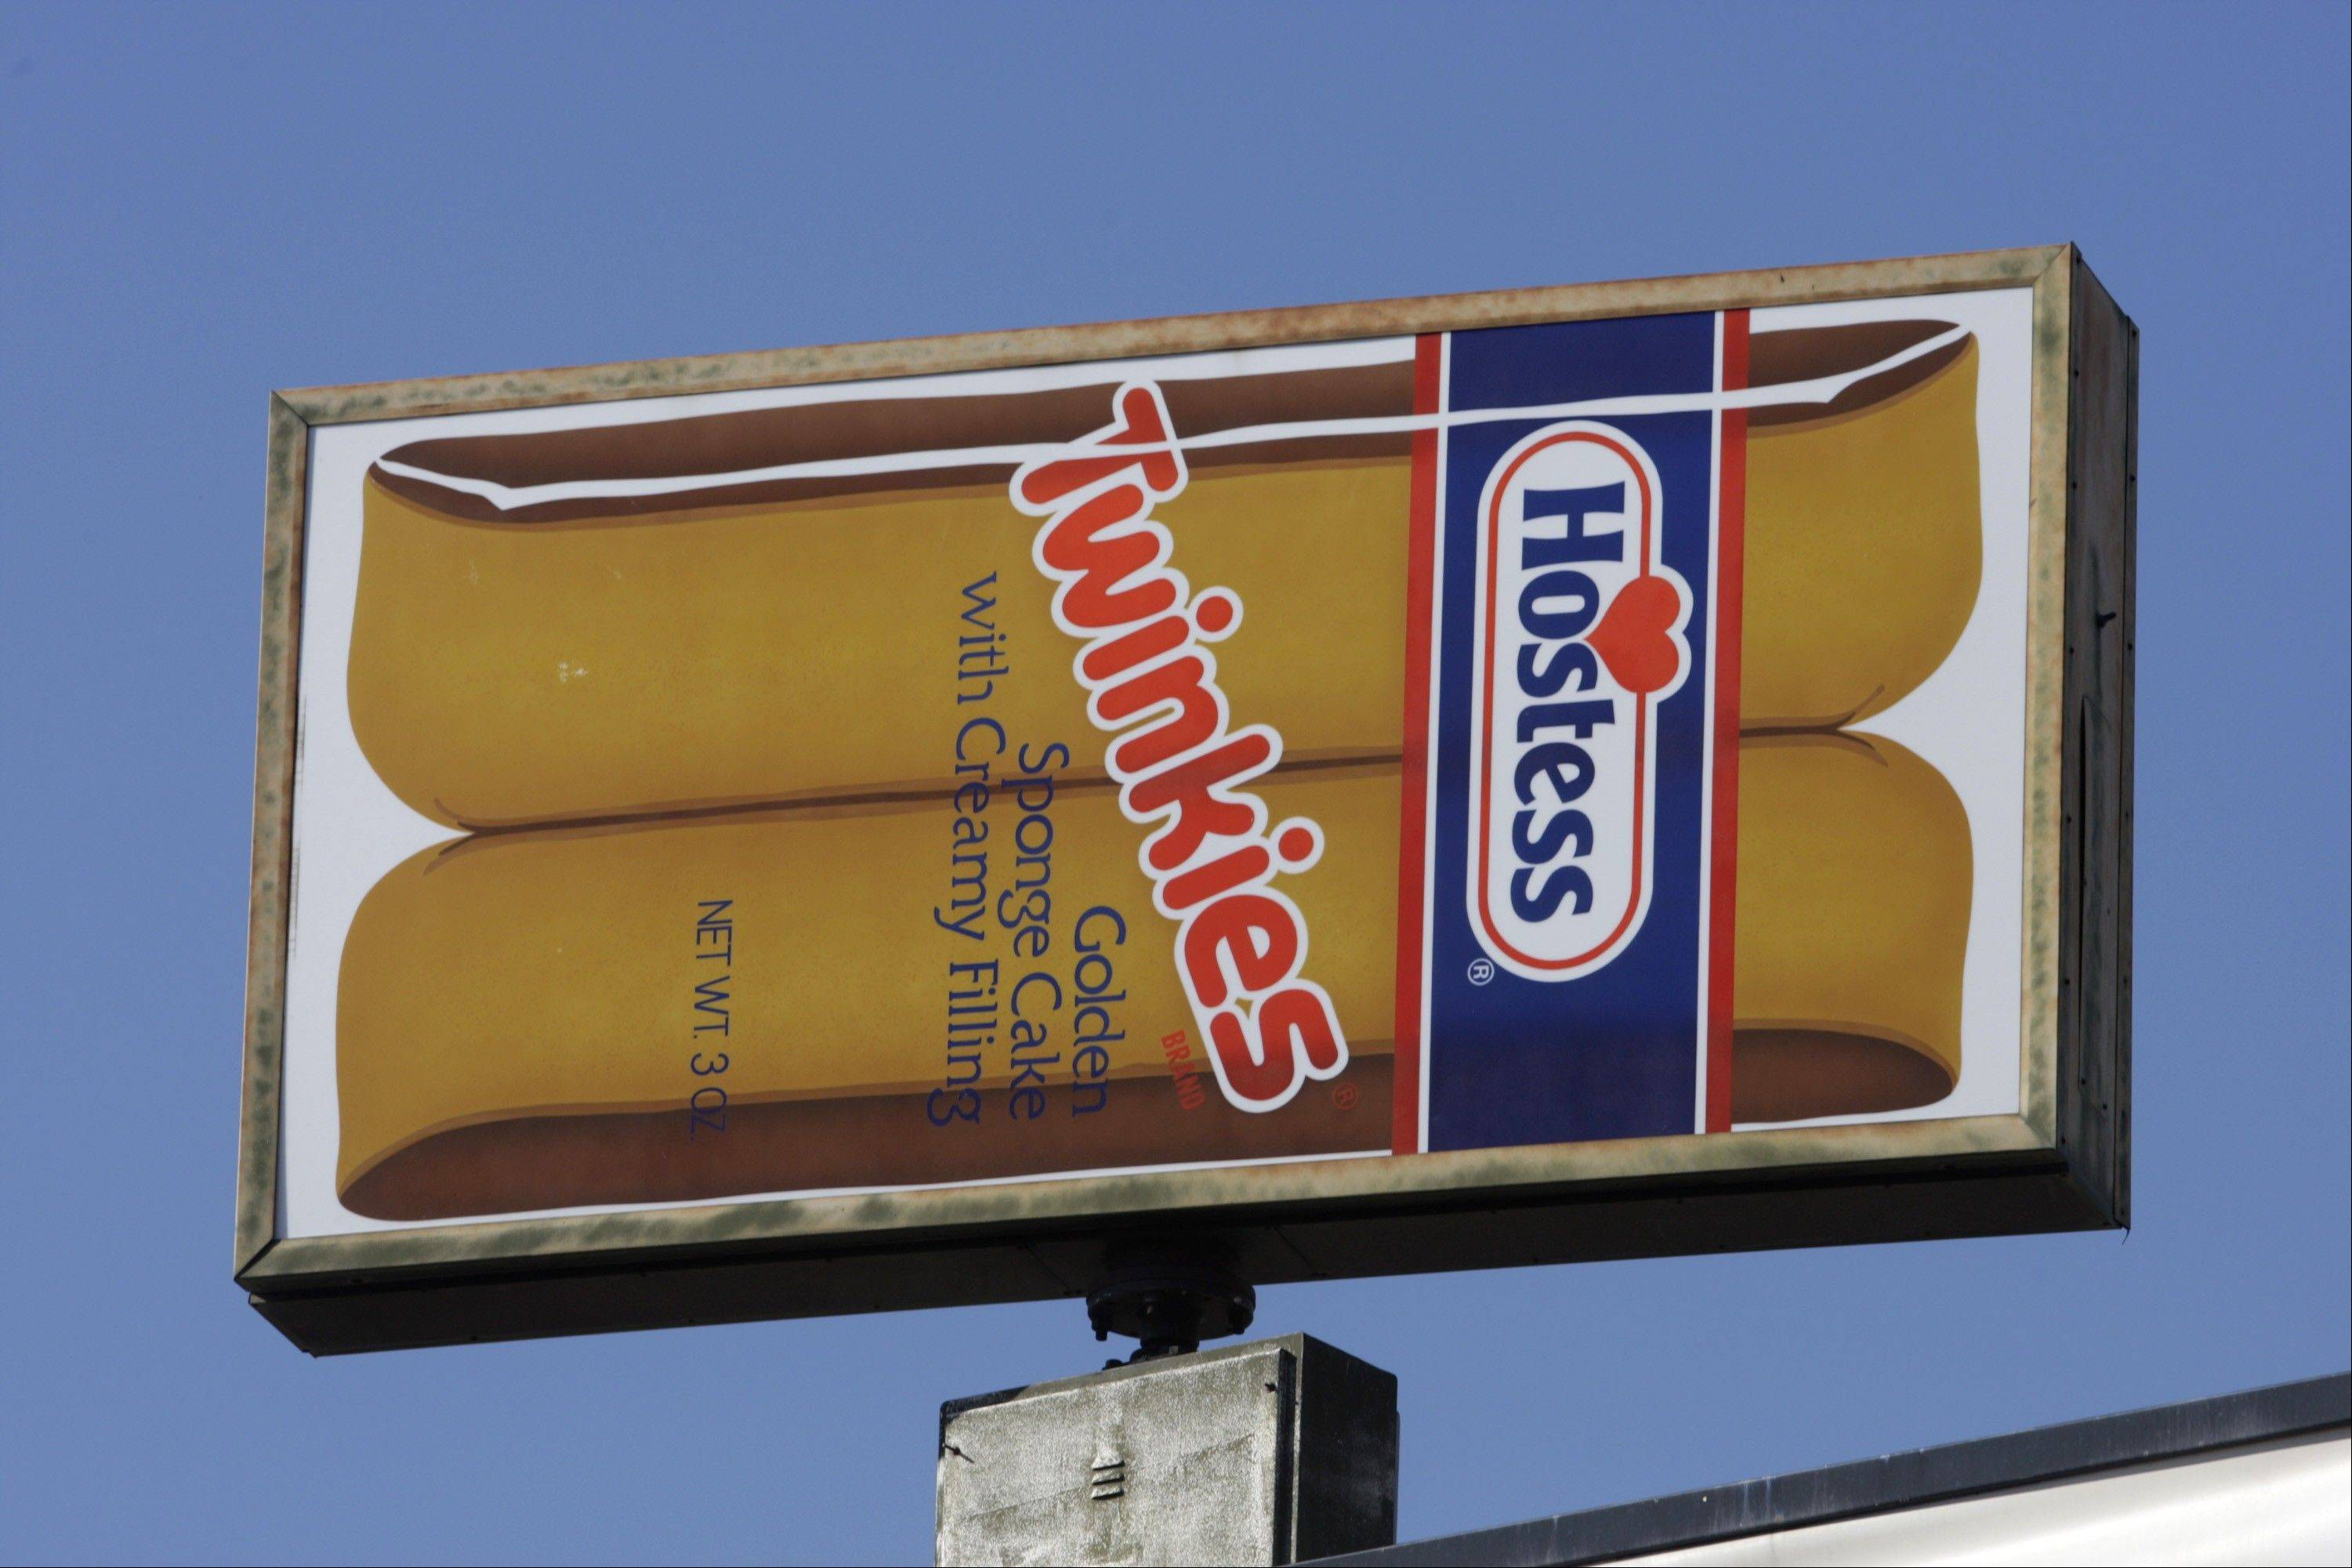 Hostess Brands Inc. says it's in talks with more than 100 parties interested in buying its brands, which include Twinkies, Ding Dongs and Ho Hos.